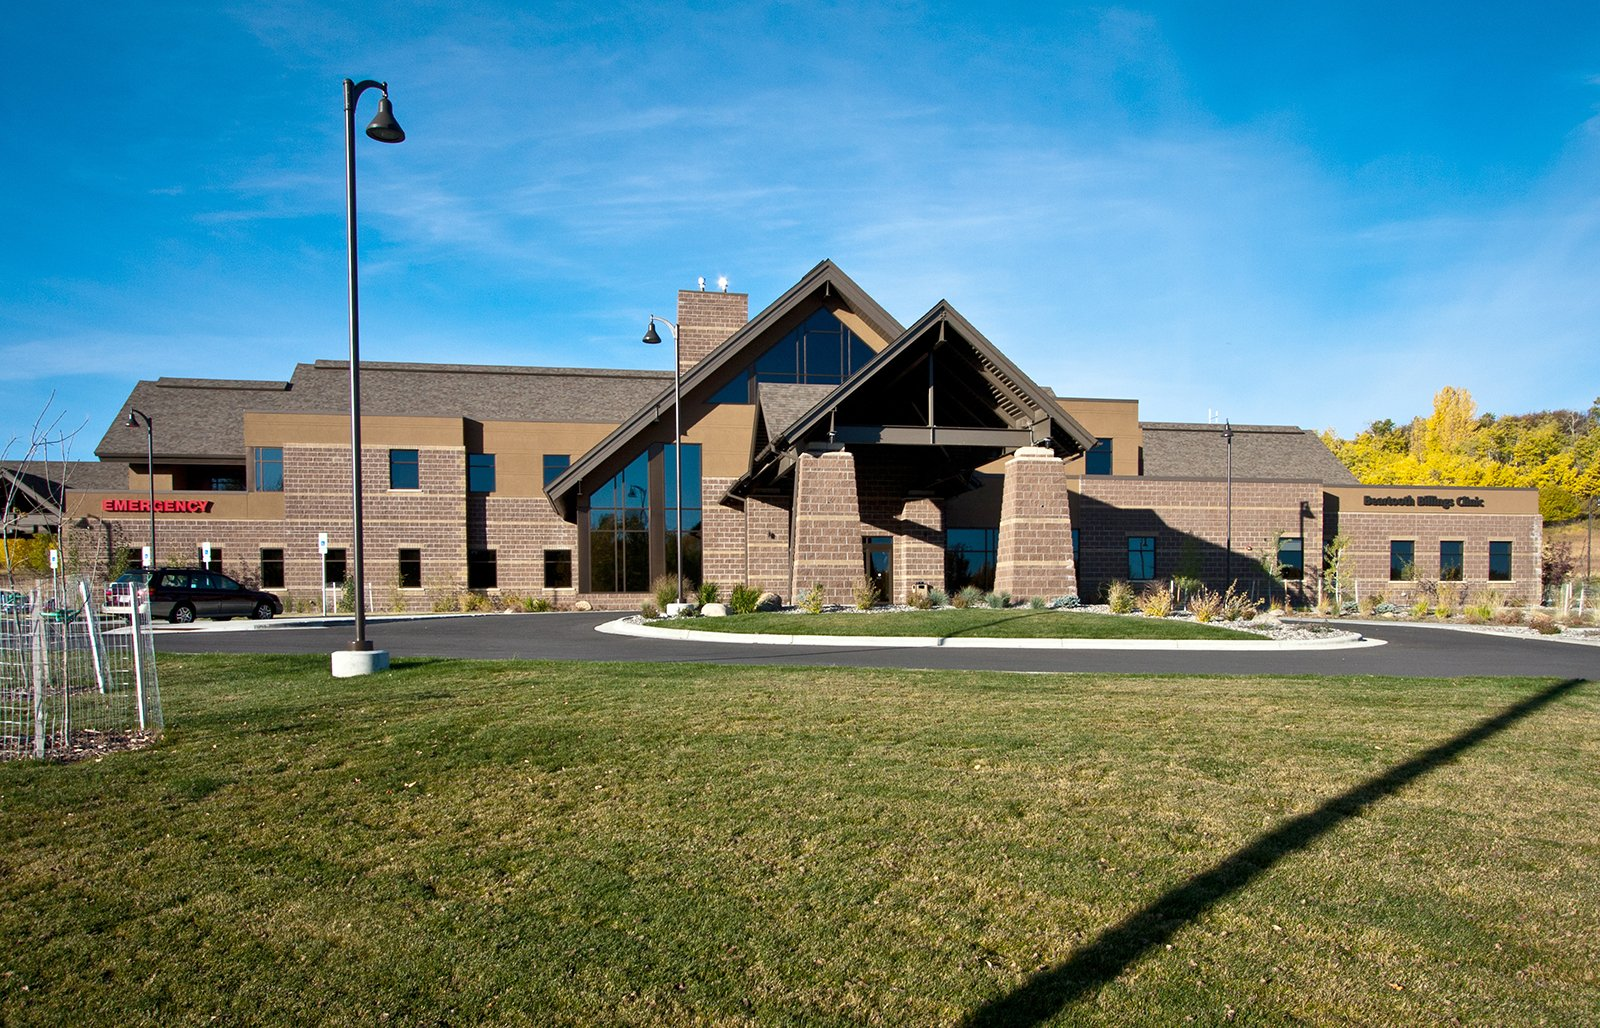 Beartooth Billings Clinic - Billings Clinic in Billings, MT